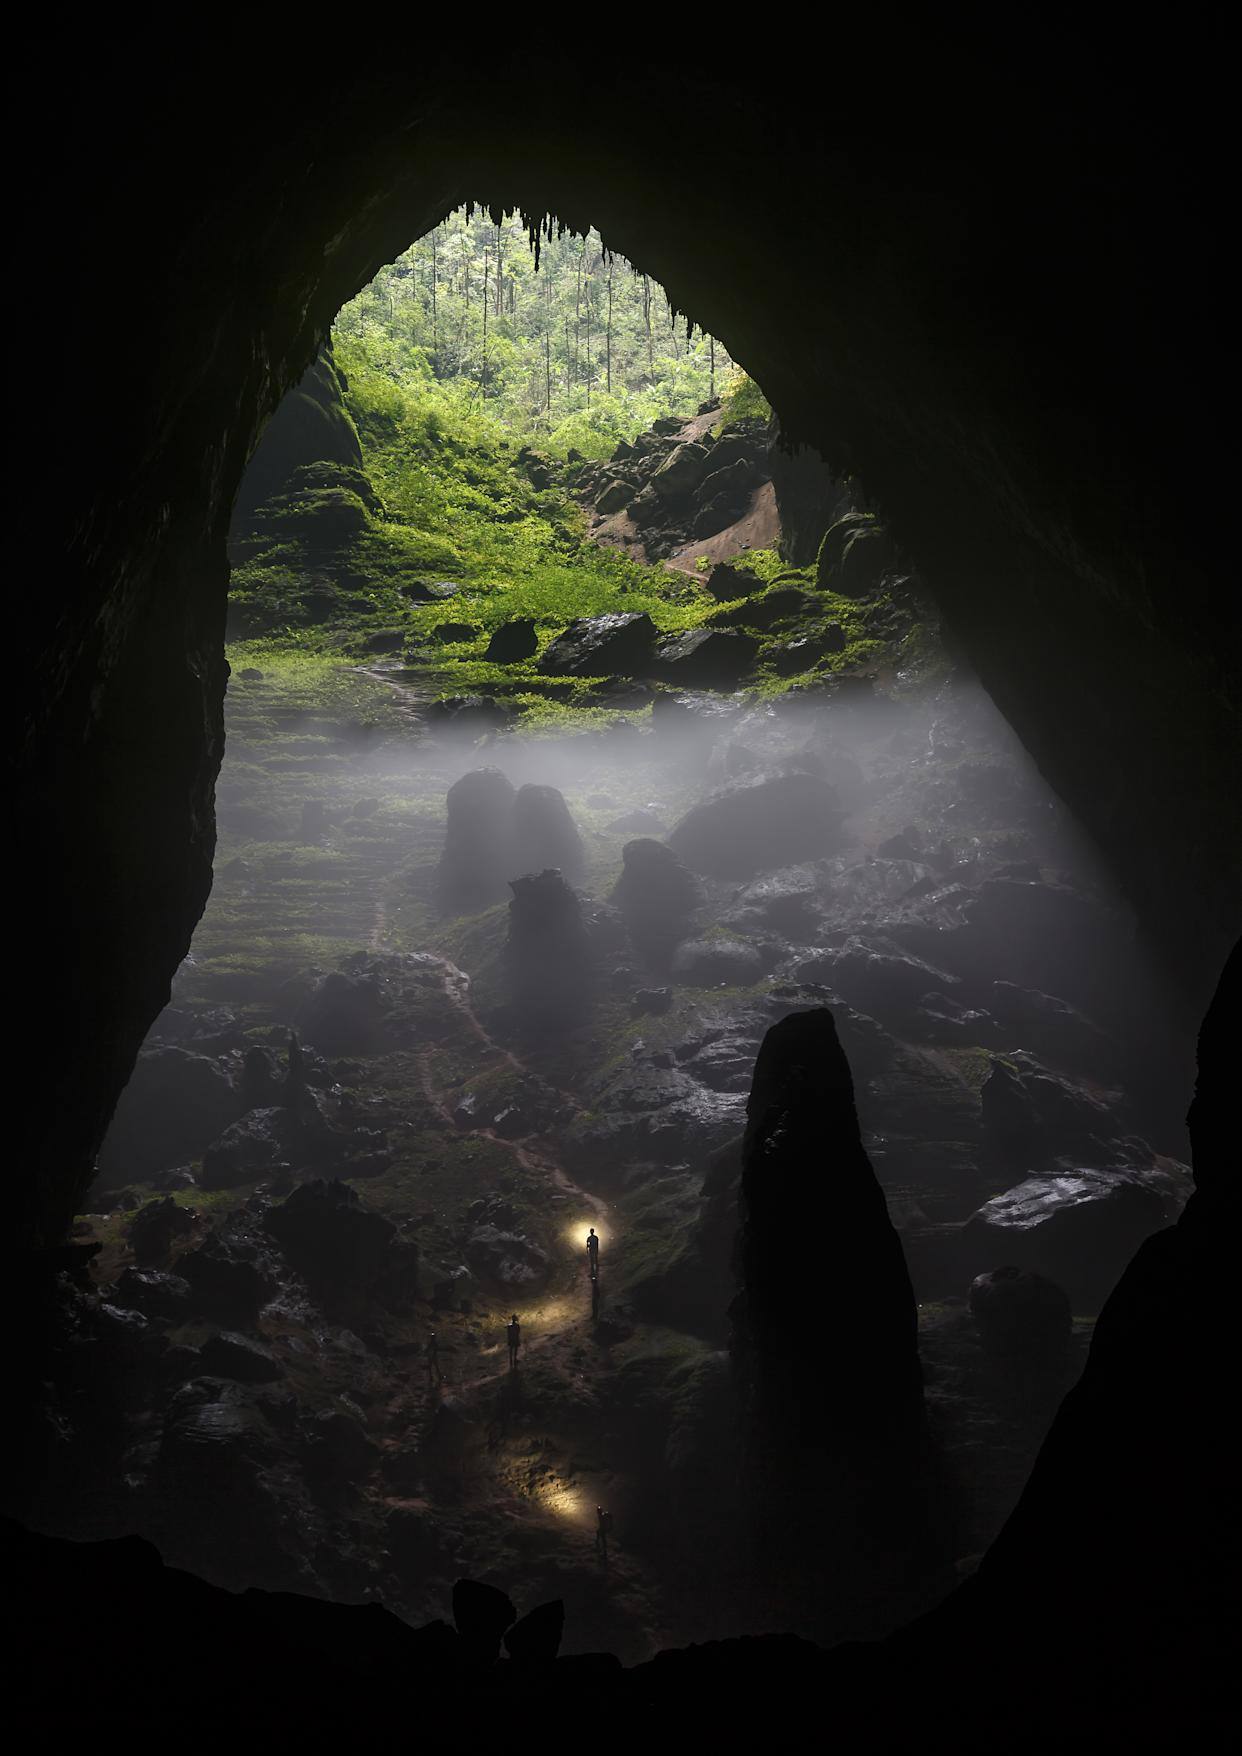 Chris Miller photographed Son Doong Cave, located deep in the Vietnamese jungle, which is the world's biggest cave and was only explored for the first time in 2009. It is a finalist this years National Geographic Traveller Photography contest. The grand-prize winner will be announced at the Telegraph Outdoor Adventure & Travel Show on 14 February, and for the first time ever, the shortlisted entries are available to buy through a unique collaboration with theprintspace at art.tt/8vs.